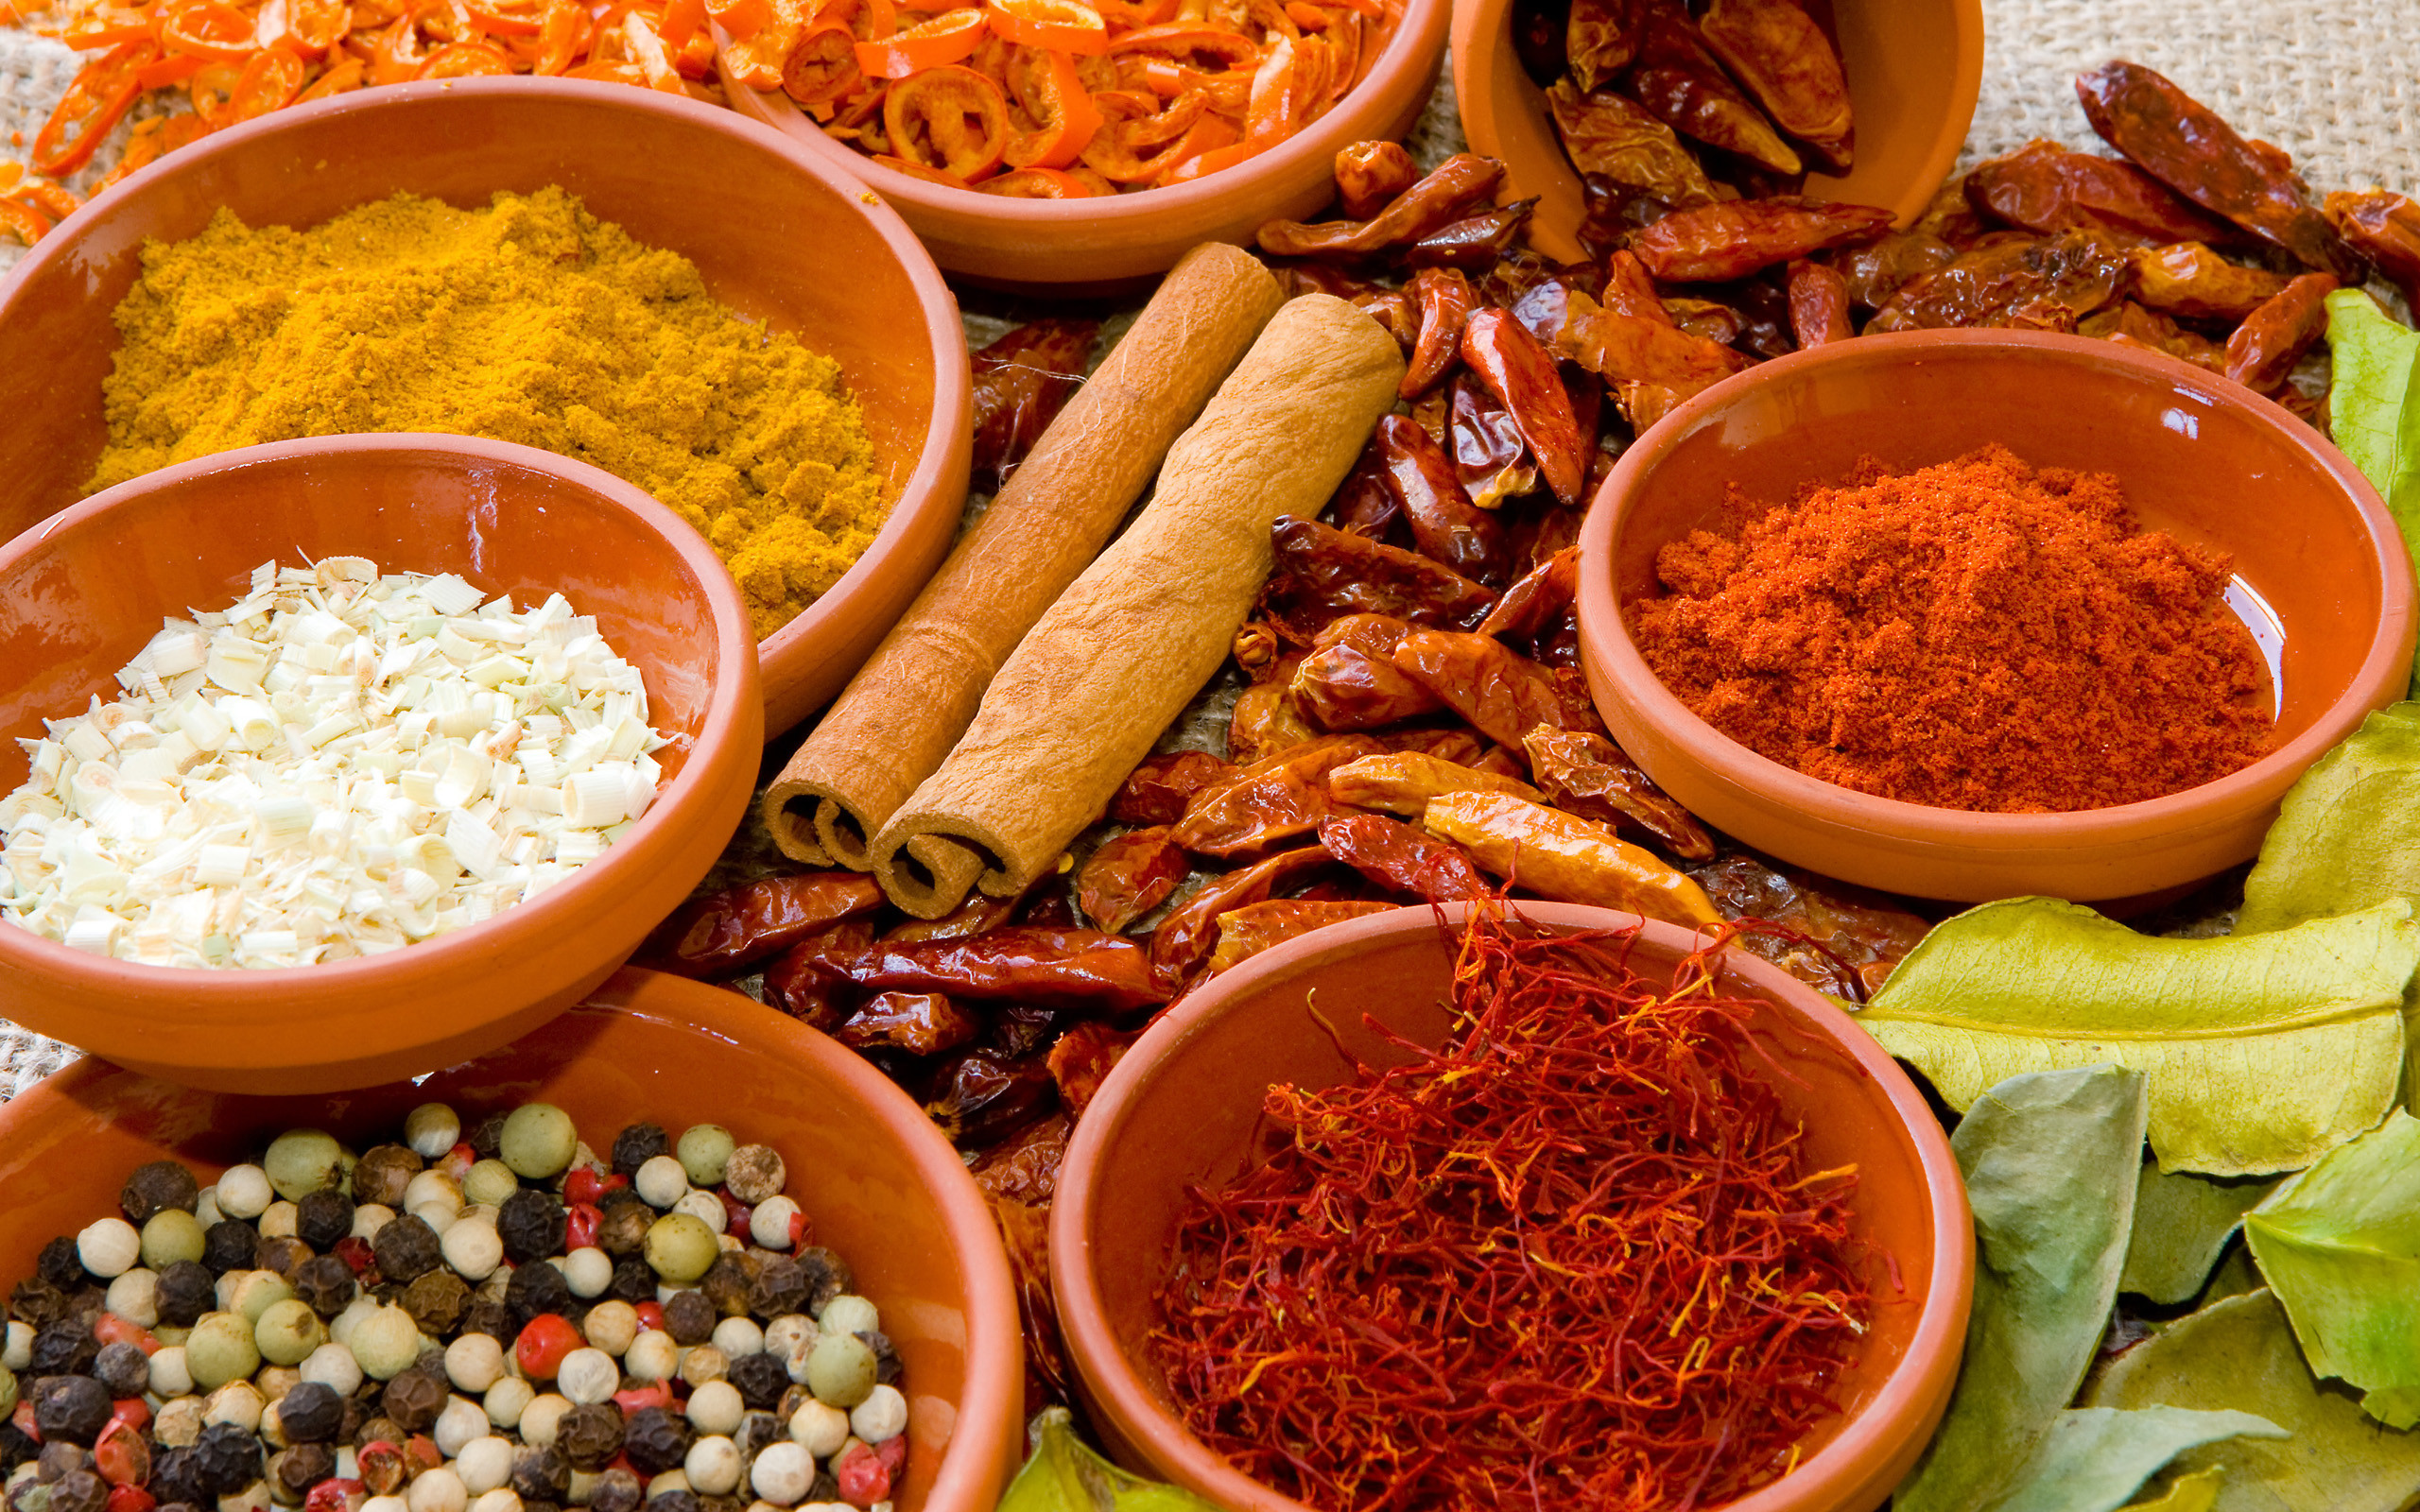 2560x1600 Food - Herbs and Spices Wallpaper